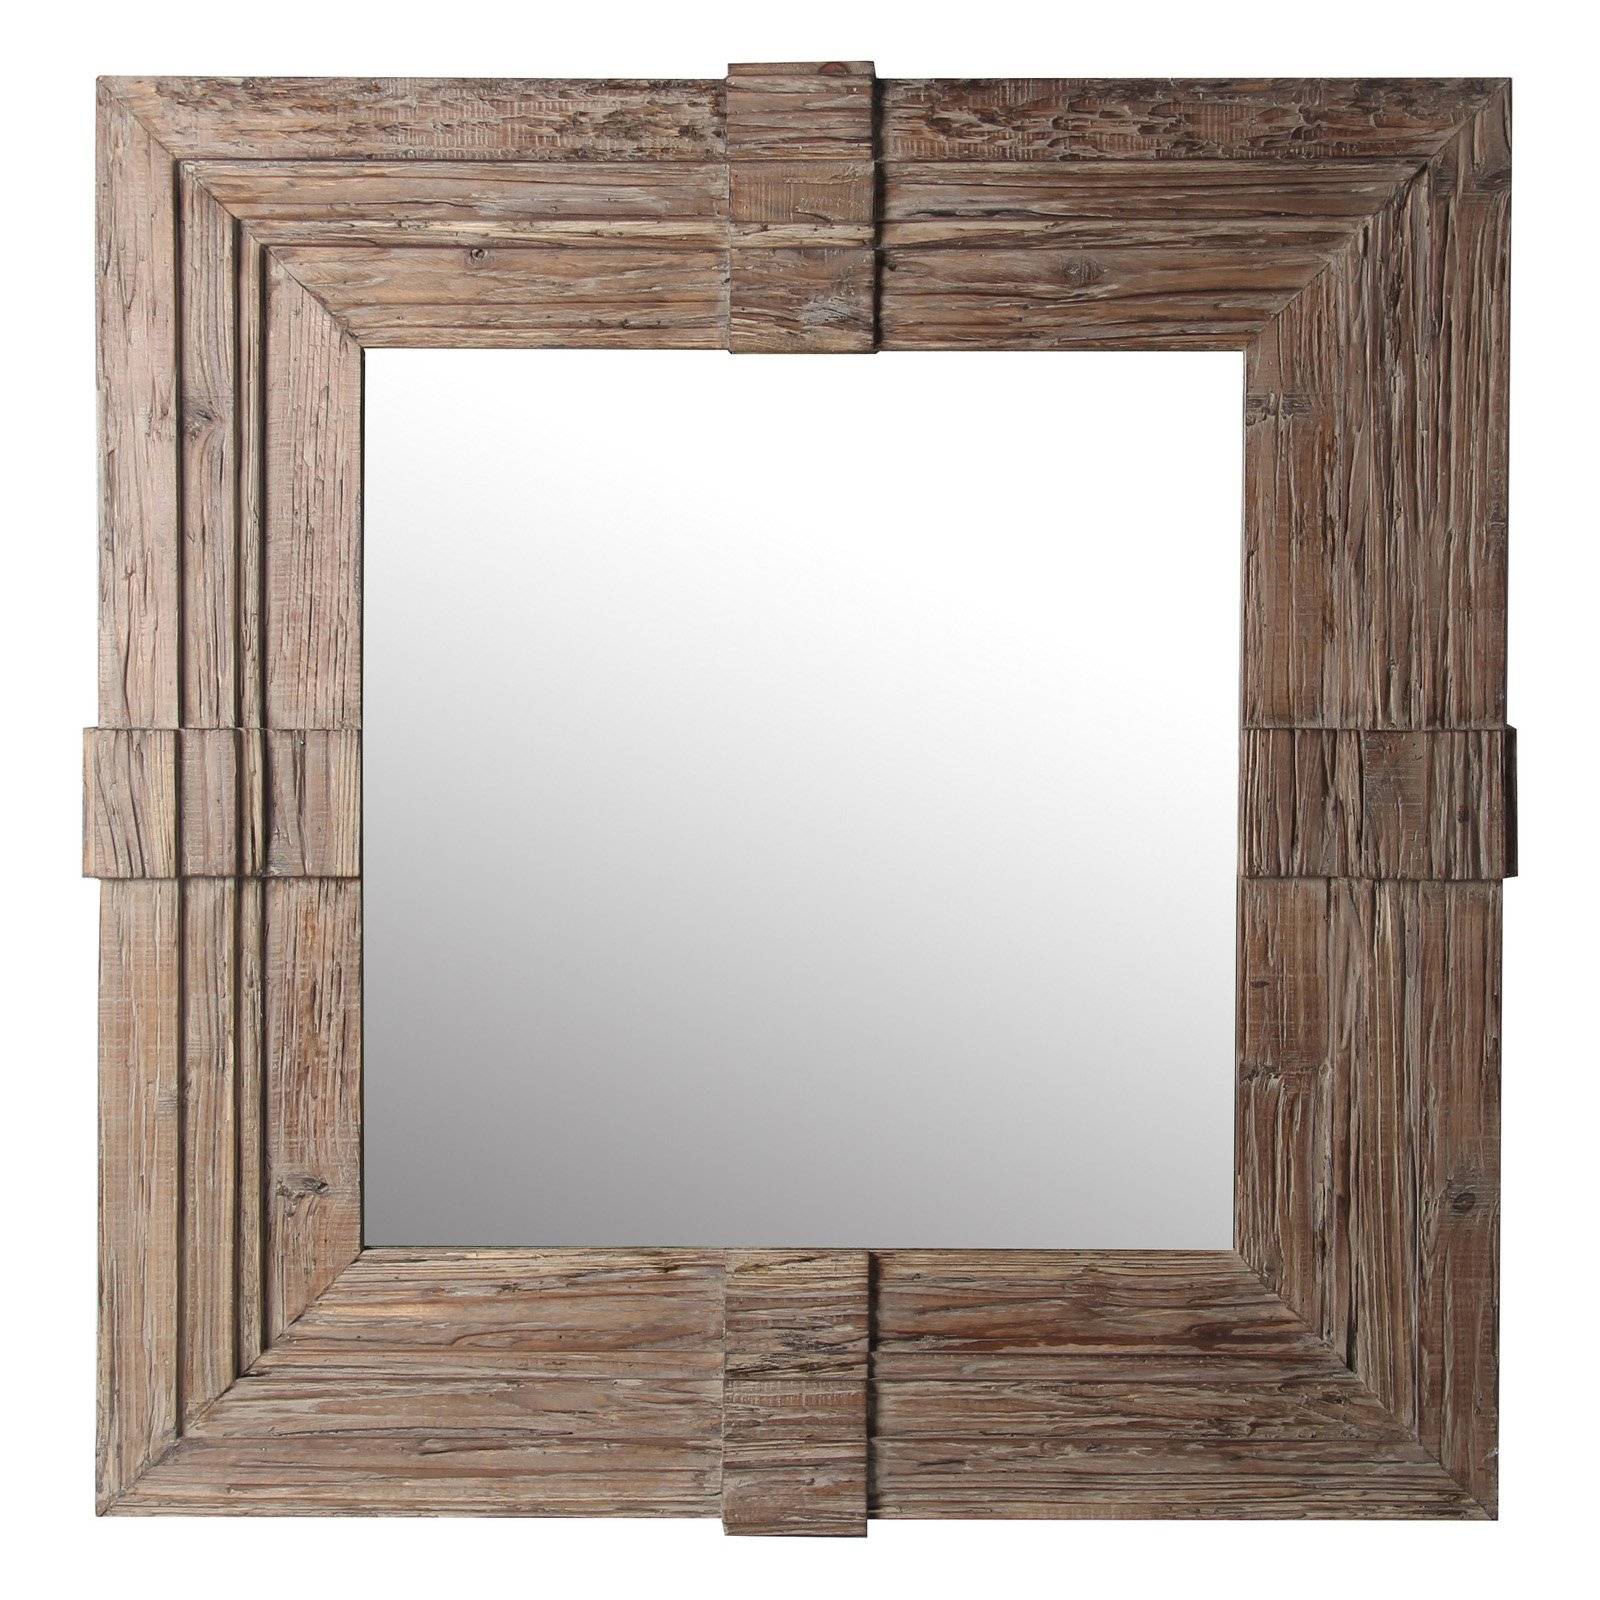 Privilege International Square Wood Traditional Wall Mirror Pertaining To Traditional Square Glass Wall Mirrors (Image 11 of 20)